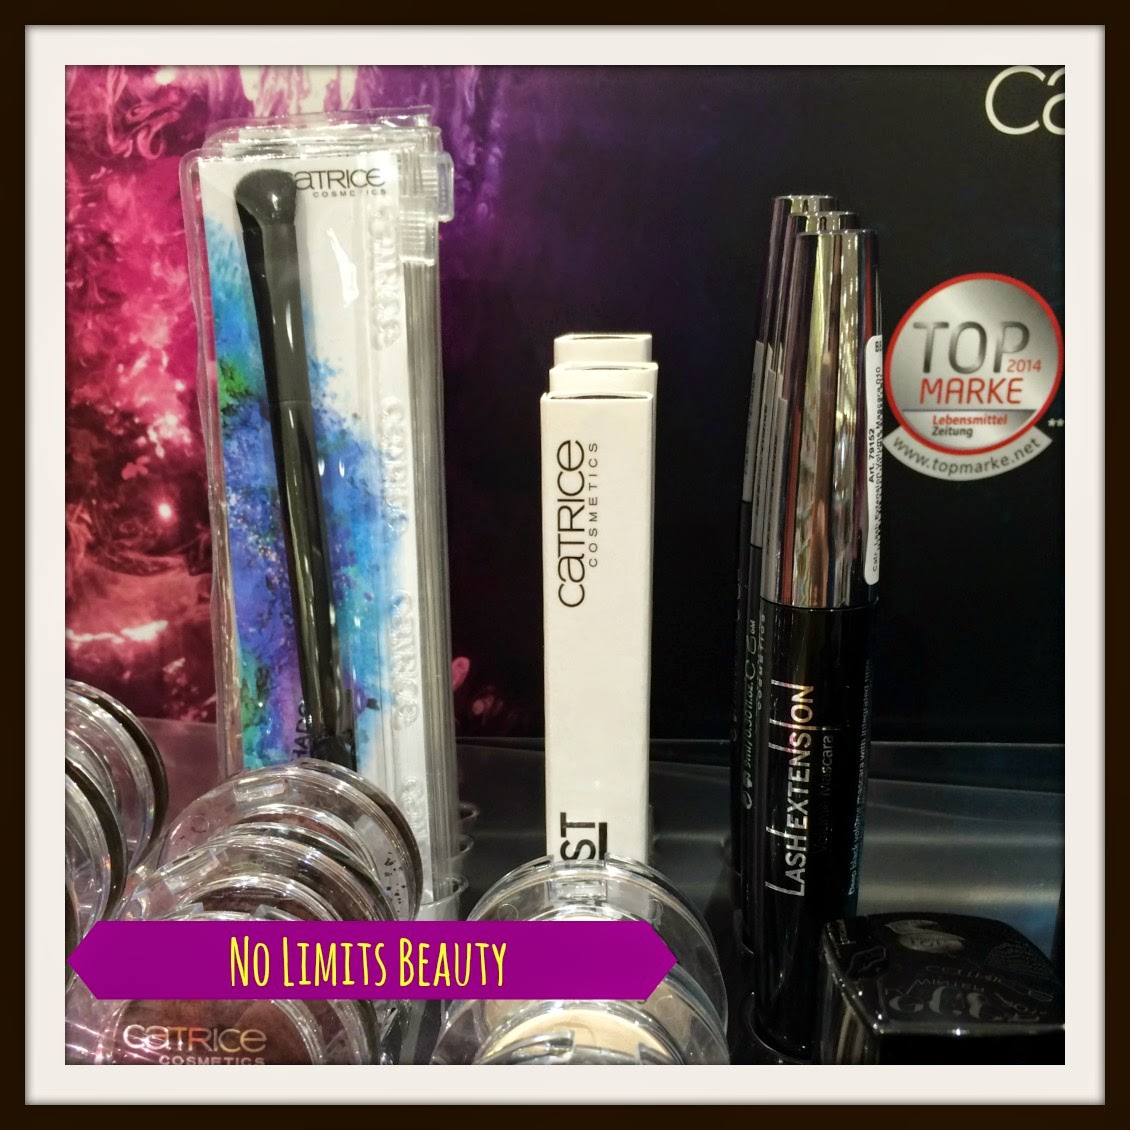 Catrice - It Pieces - Duo Eyeshadow brush - Lash Boost Extension Fibres - Lash Extension Volume Mascara